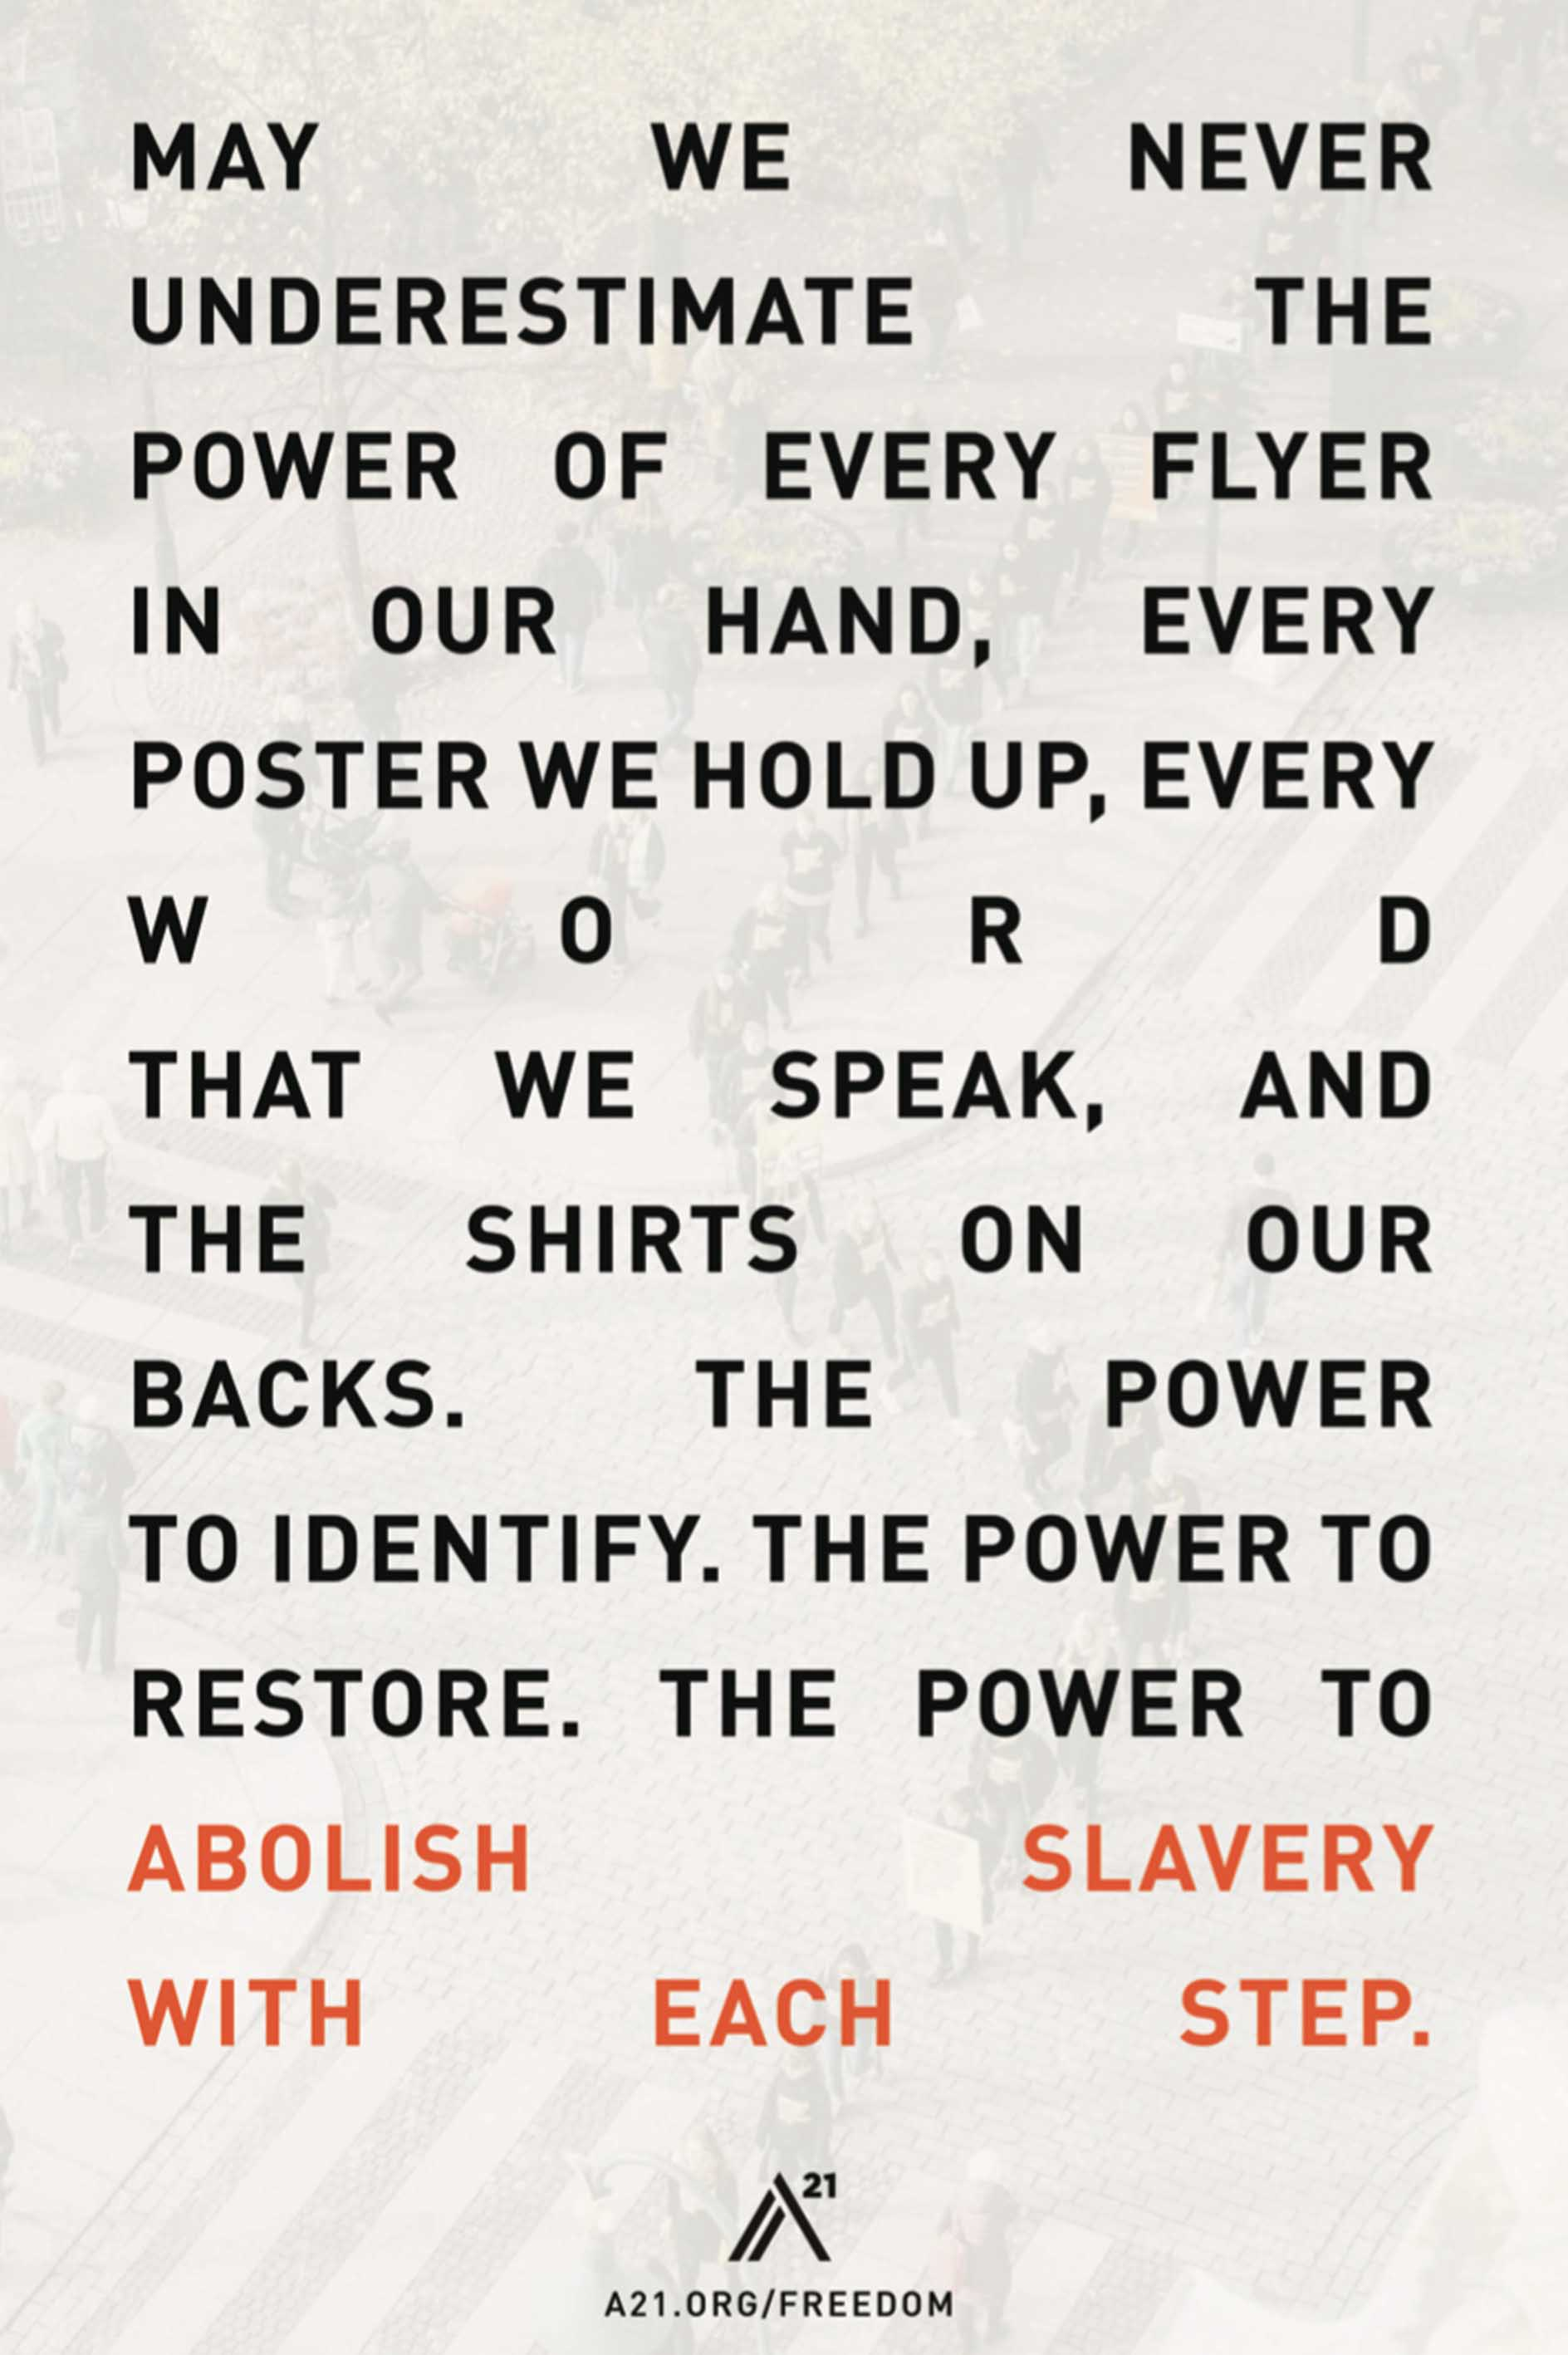 Poster 4: May we never underestimate the power of every flyer in our hand, every poster we hold up, every word that we speak, and the shirts on our backs. The power to identify. The power to restore. The power to abolish slavery with each step.